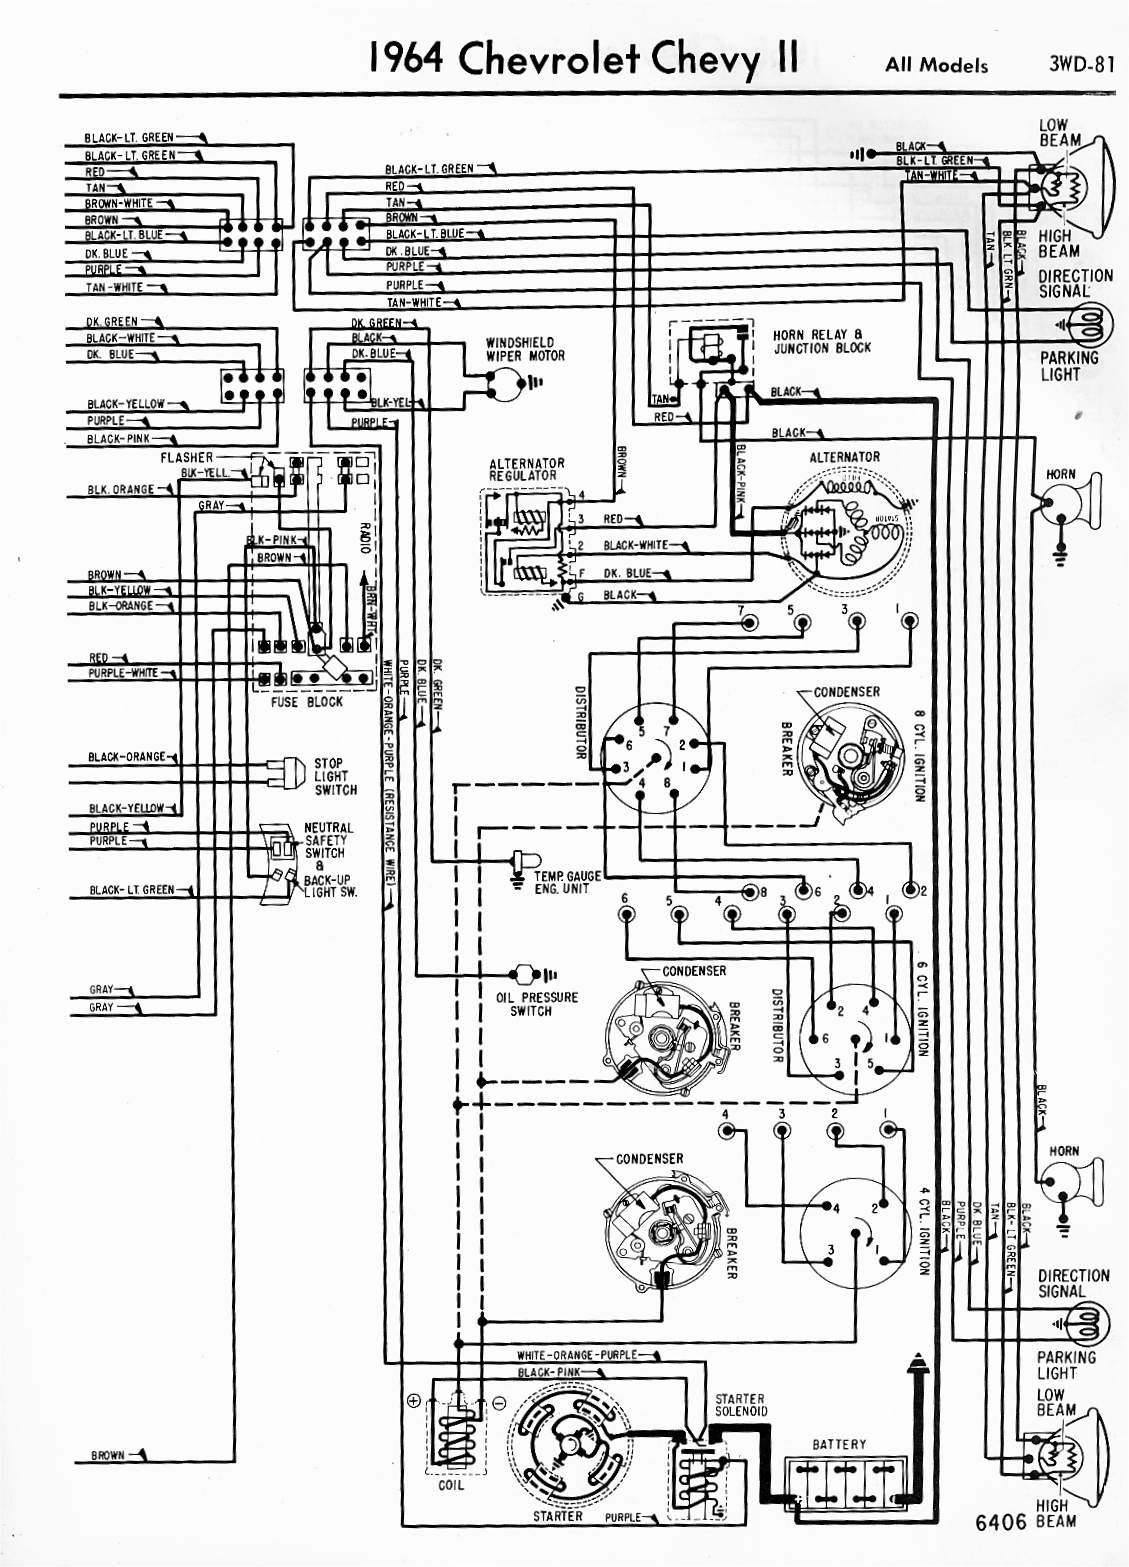 1969 chevy c10 wiring diagram elegant wiring diagram image rh mainetreasurechest com 1968 chevy pickup wiring diagram 1969 chevy truck headlight wiring diagram